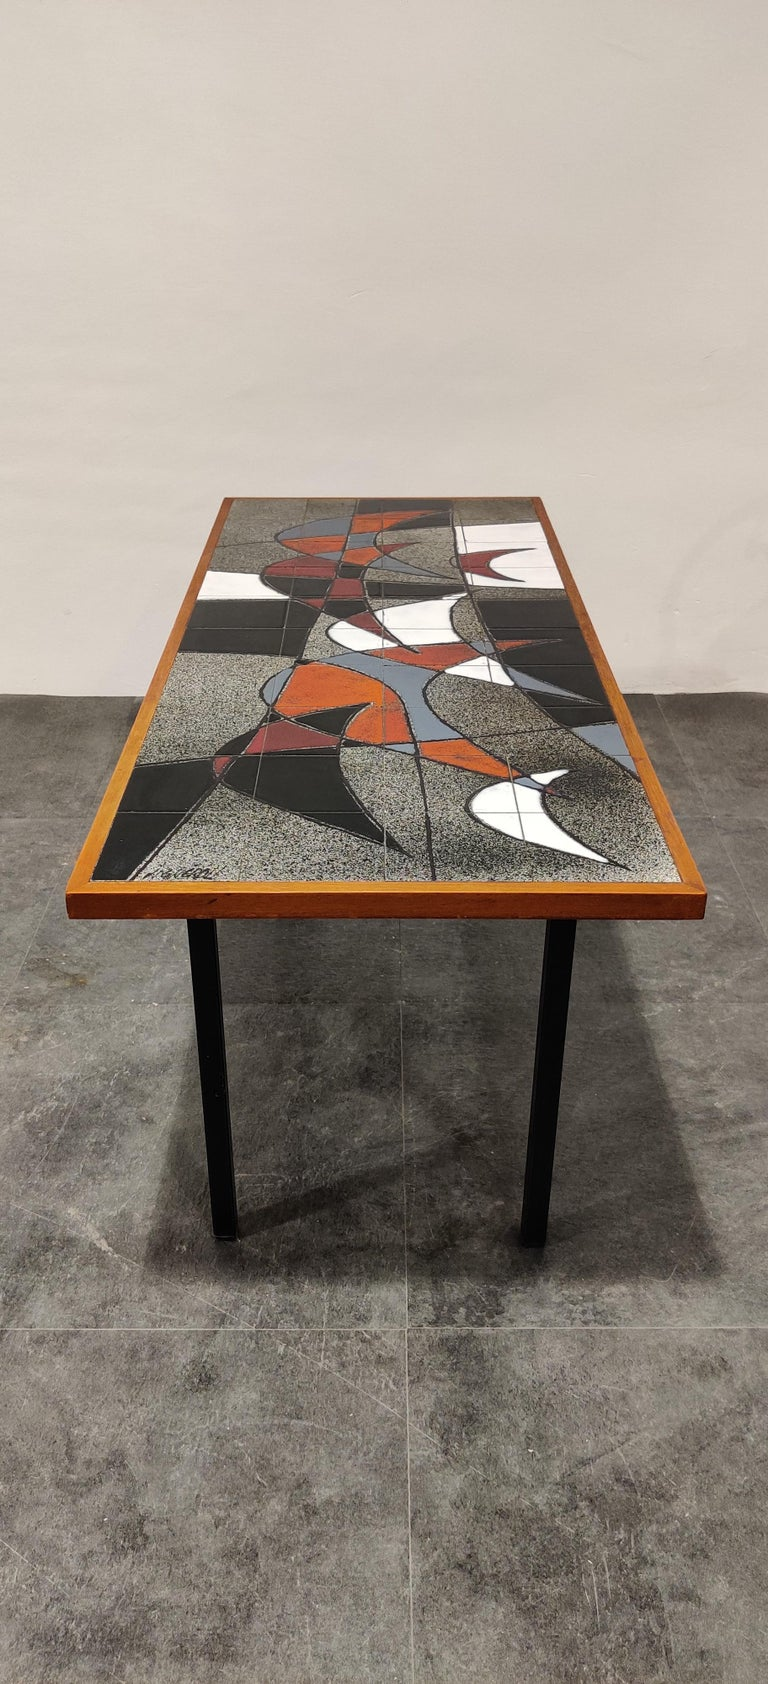 Midcentury Ceramic Coffee Table by Vigneron, 1960s For Sale 4